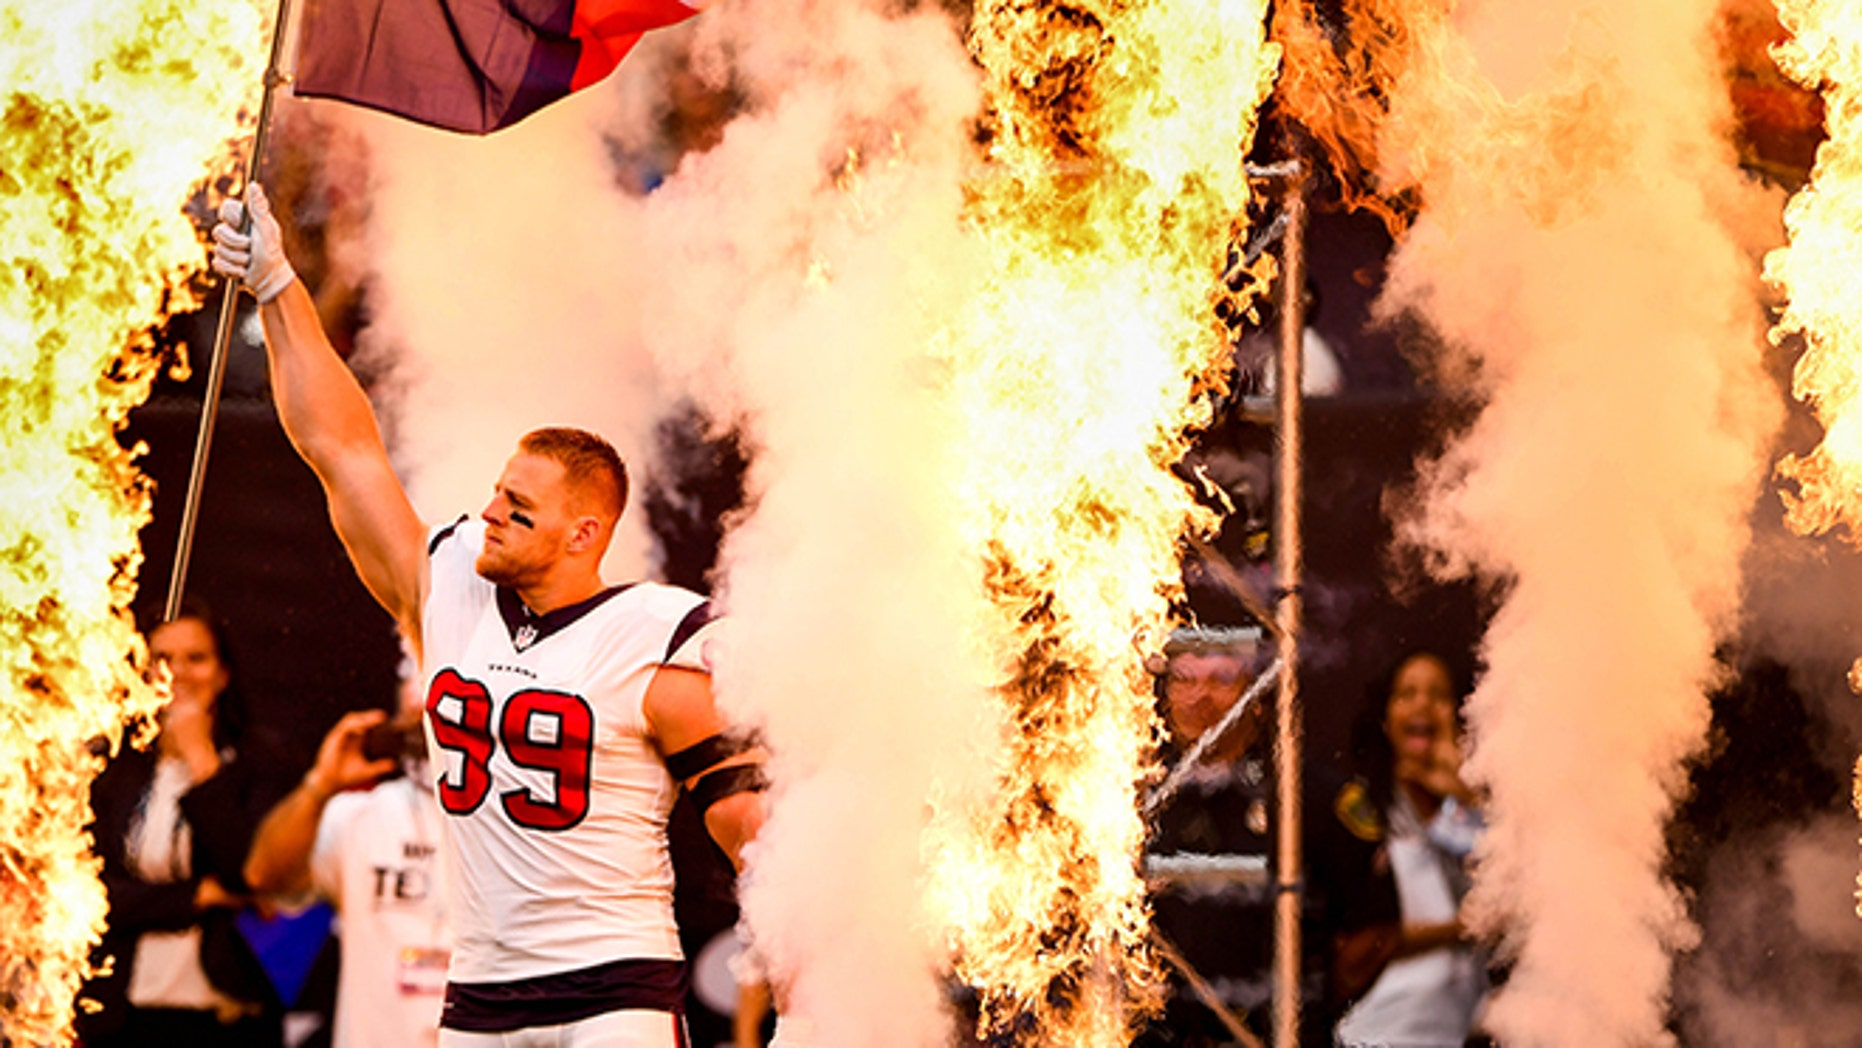 Houston Texans defensive end JJ Watt (99) waves a Texas state flag during player introductions before the game.